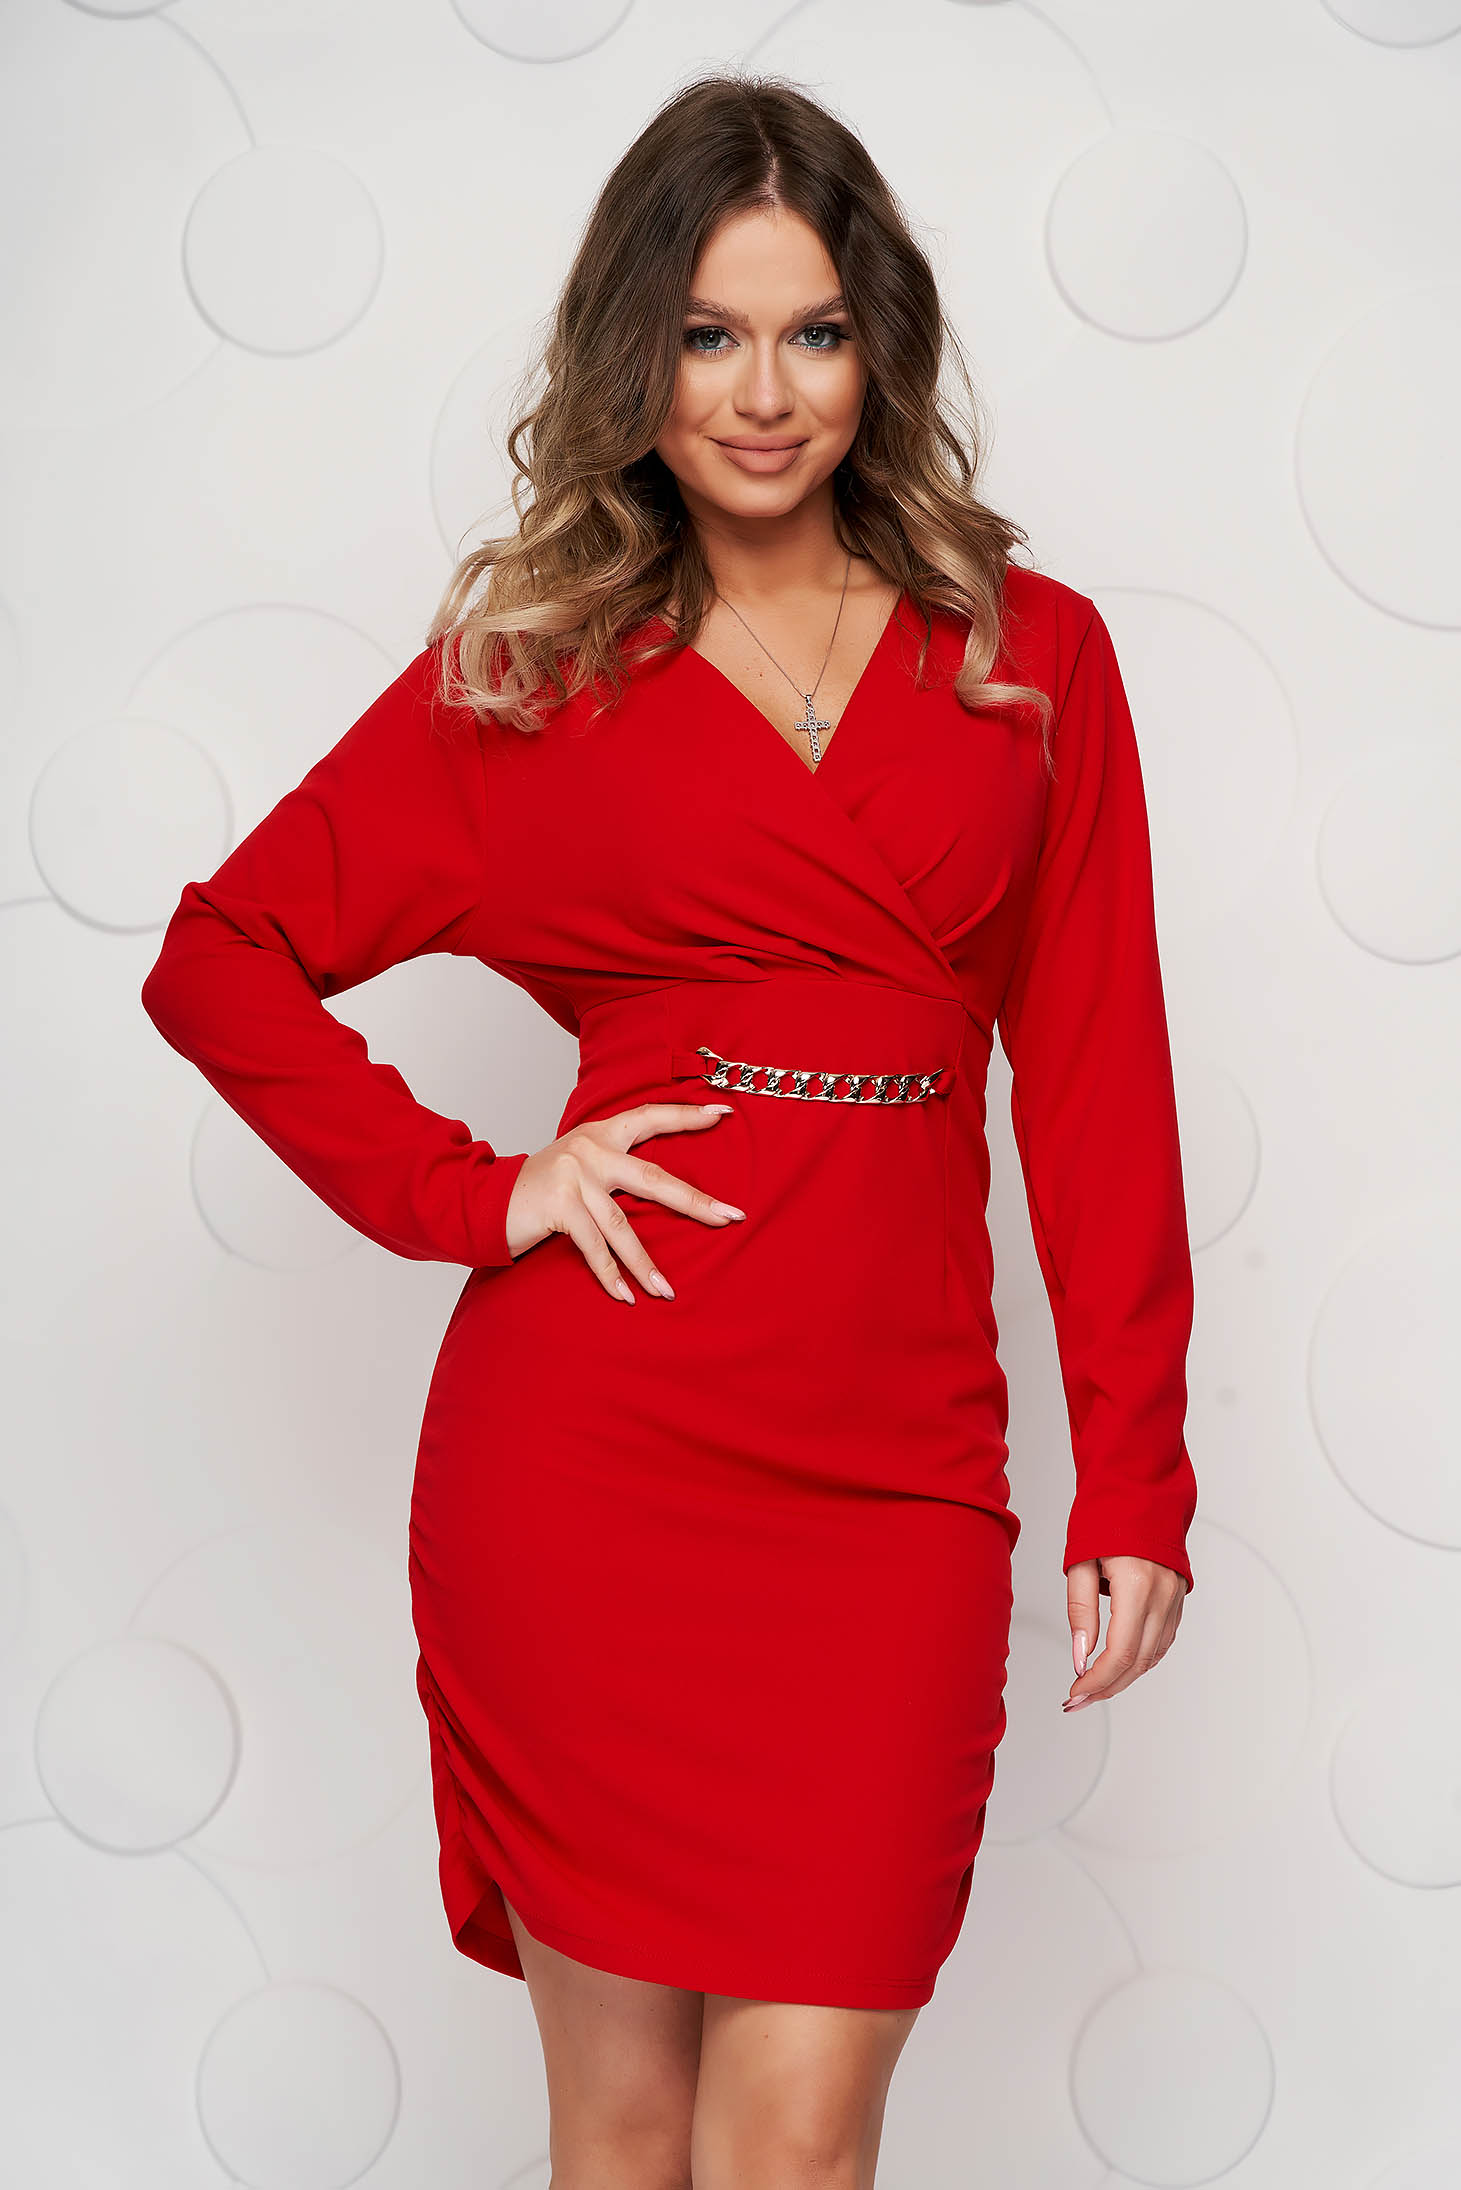 Short cut dress red clubbing pencil wrinkled material on both sides